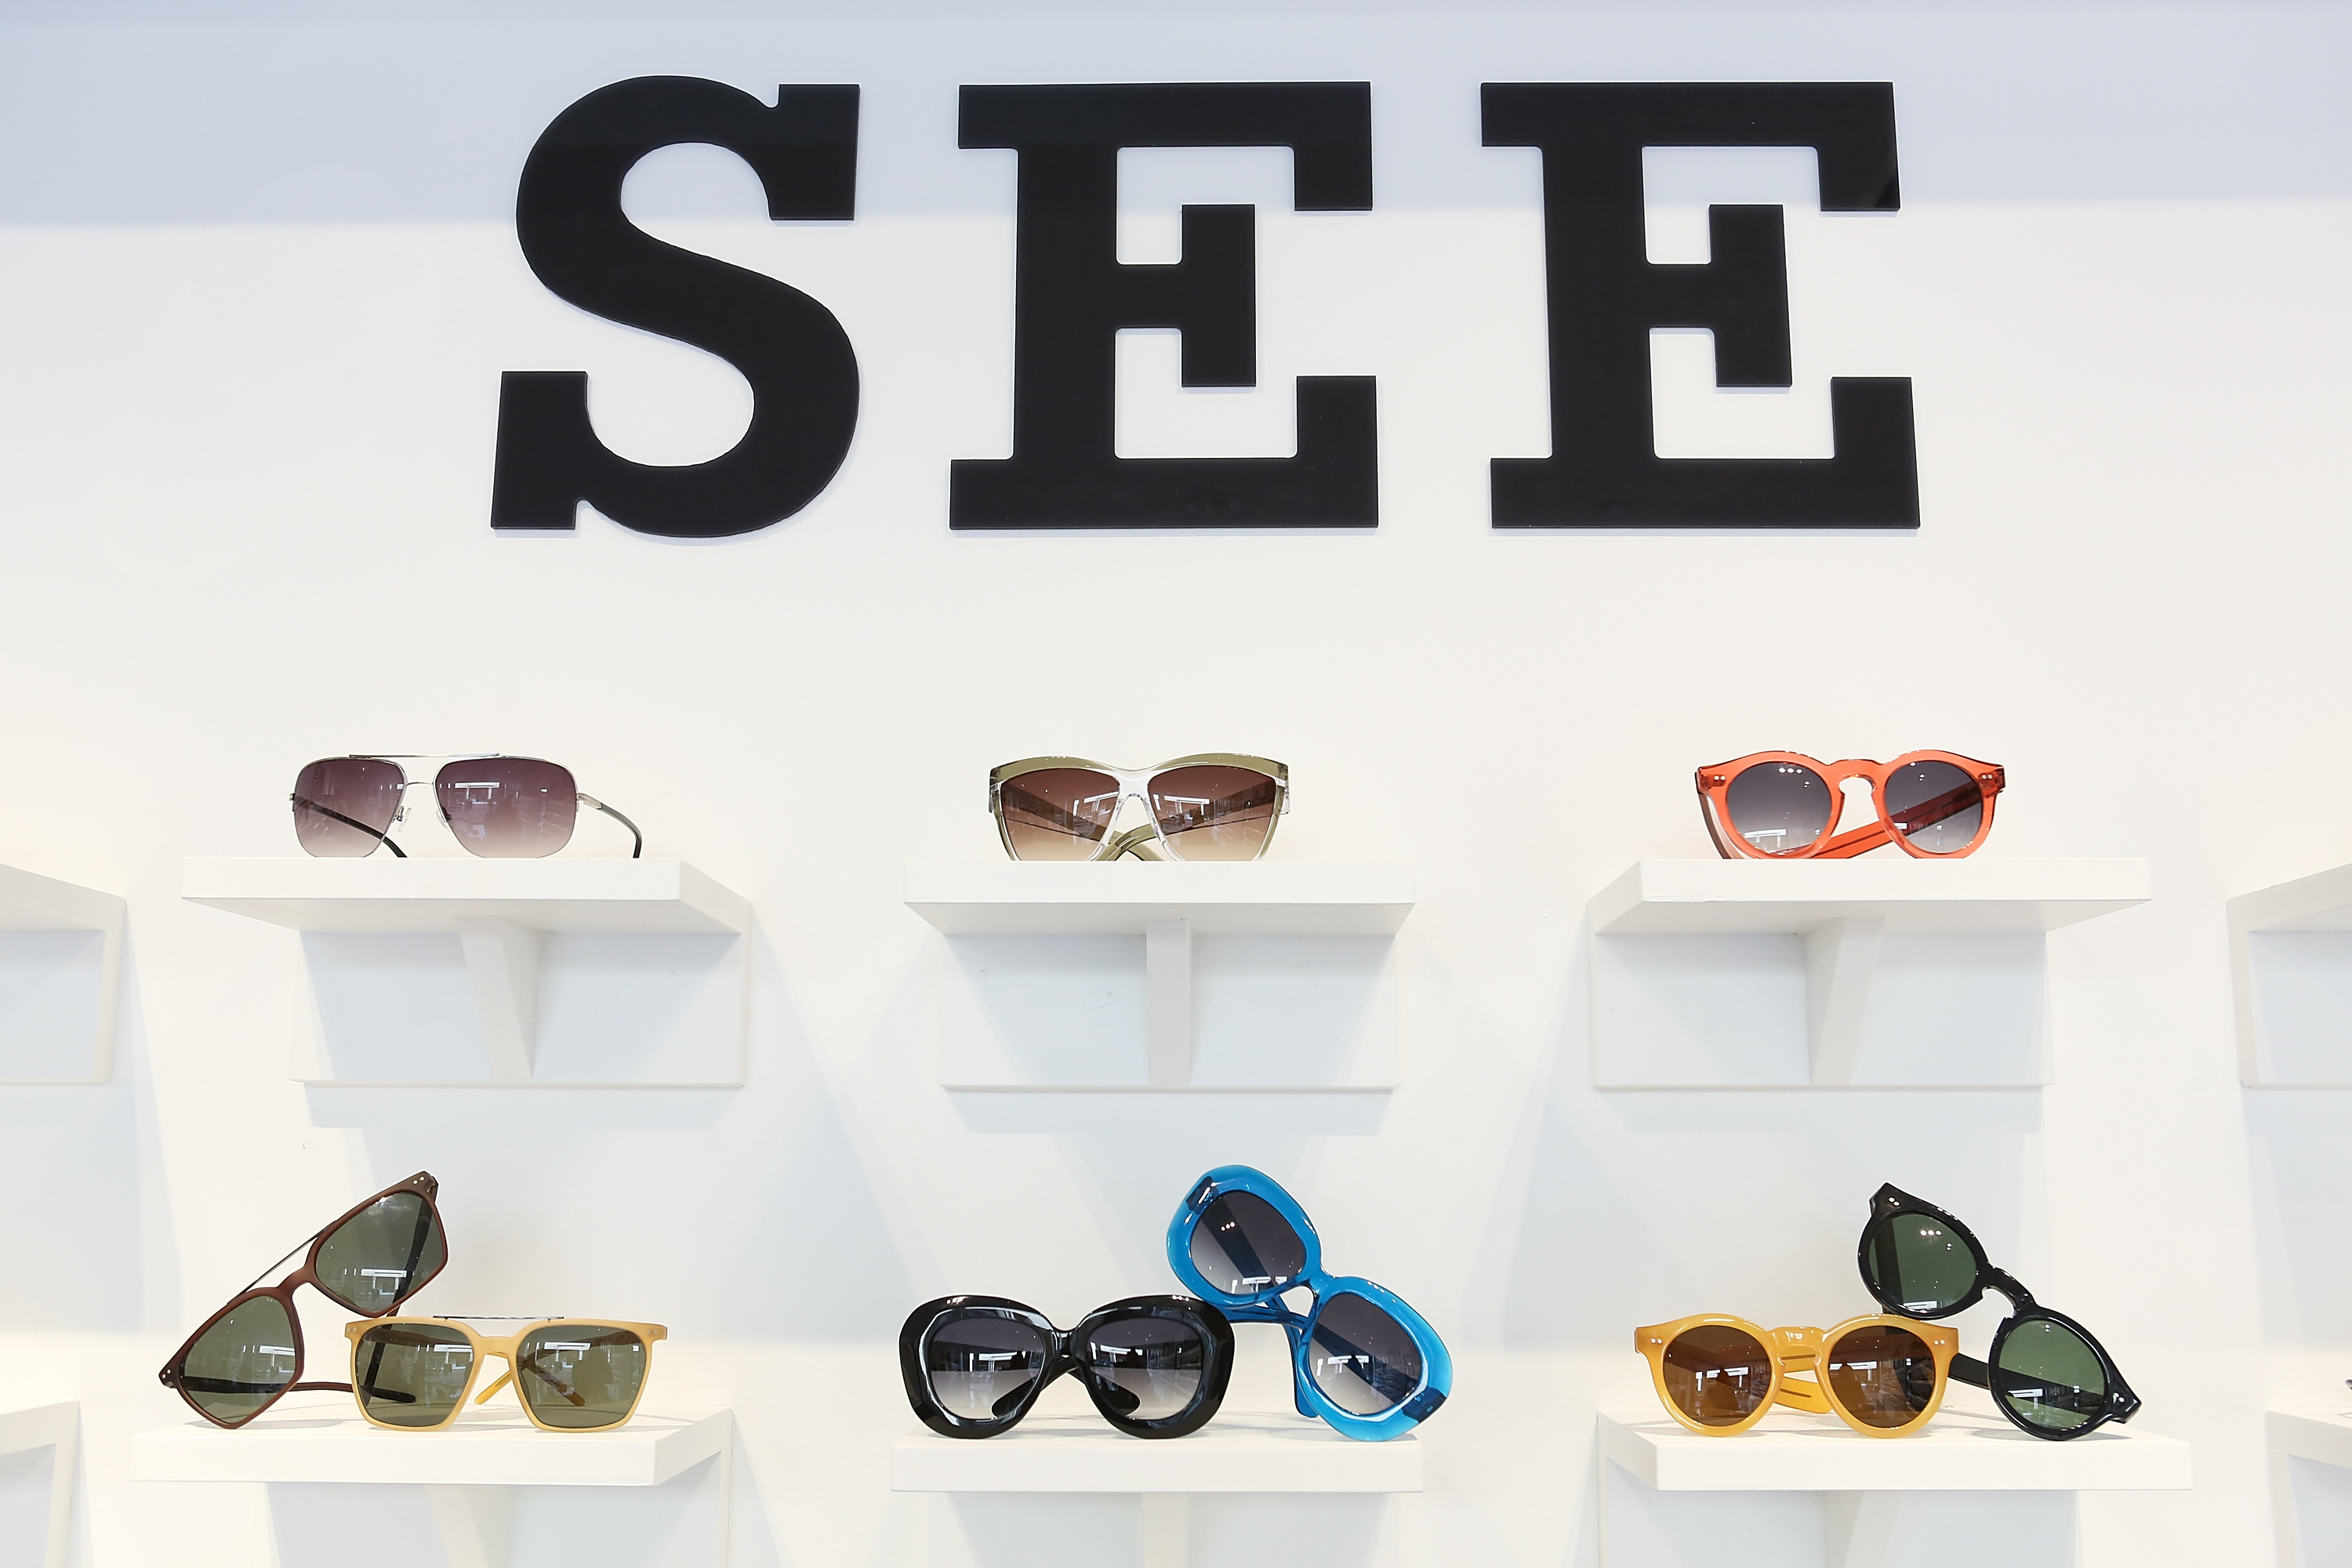 3ec77a2055f5 Biz Buzz: SEE Eyewear Opens at Fashion Island - Newport Beach News